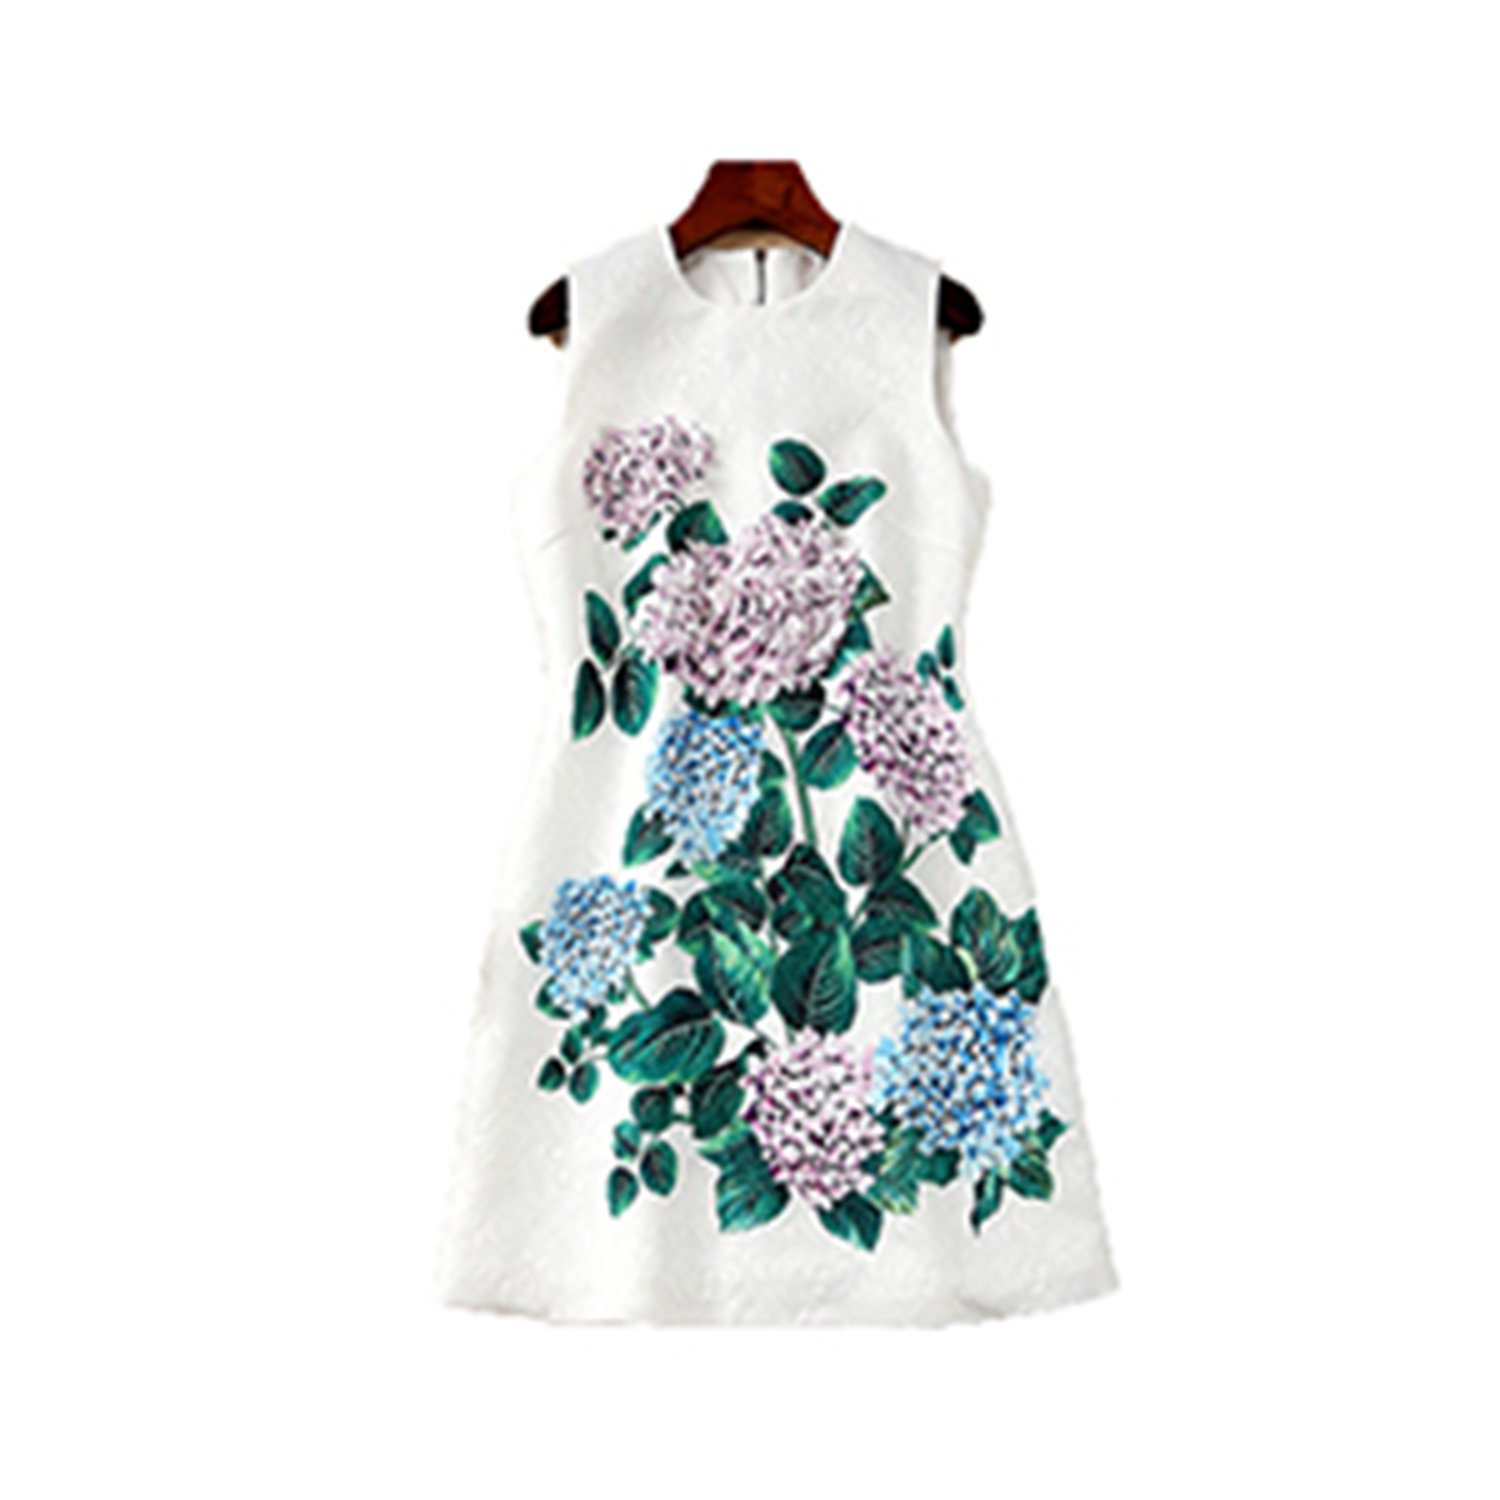 520697899d1 Slim Summer Pretty Leaf Flower Print 3D Appliques White Sleeveless Dress  Women at Amazon Women s Clothing store